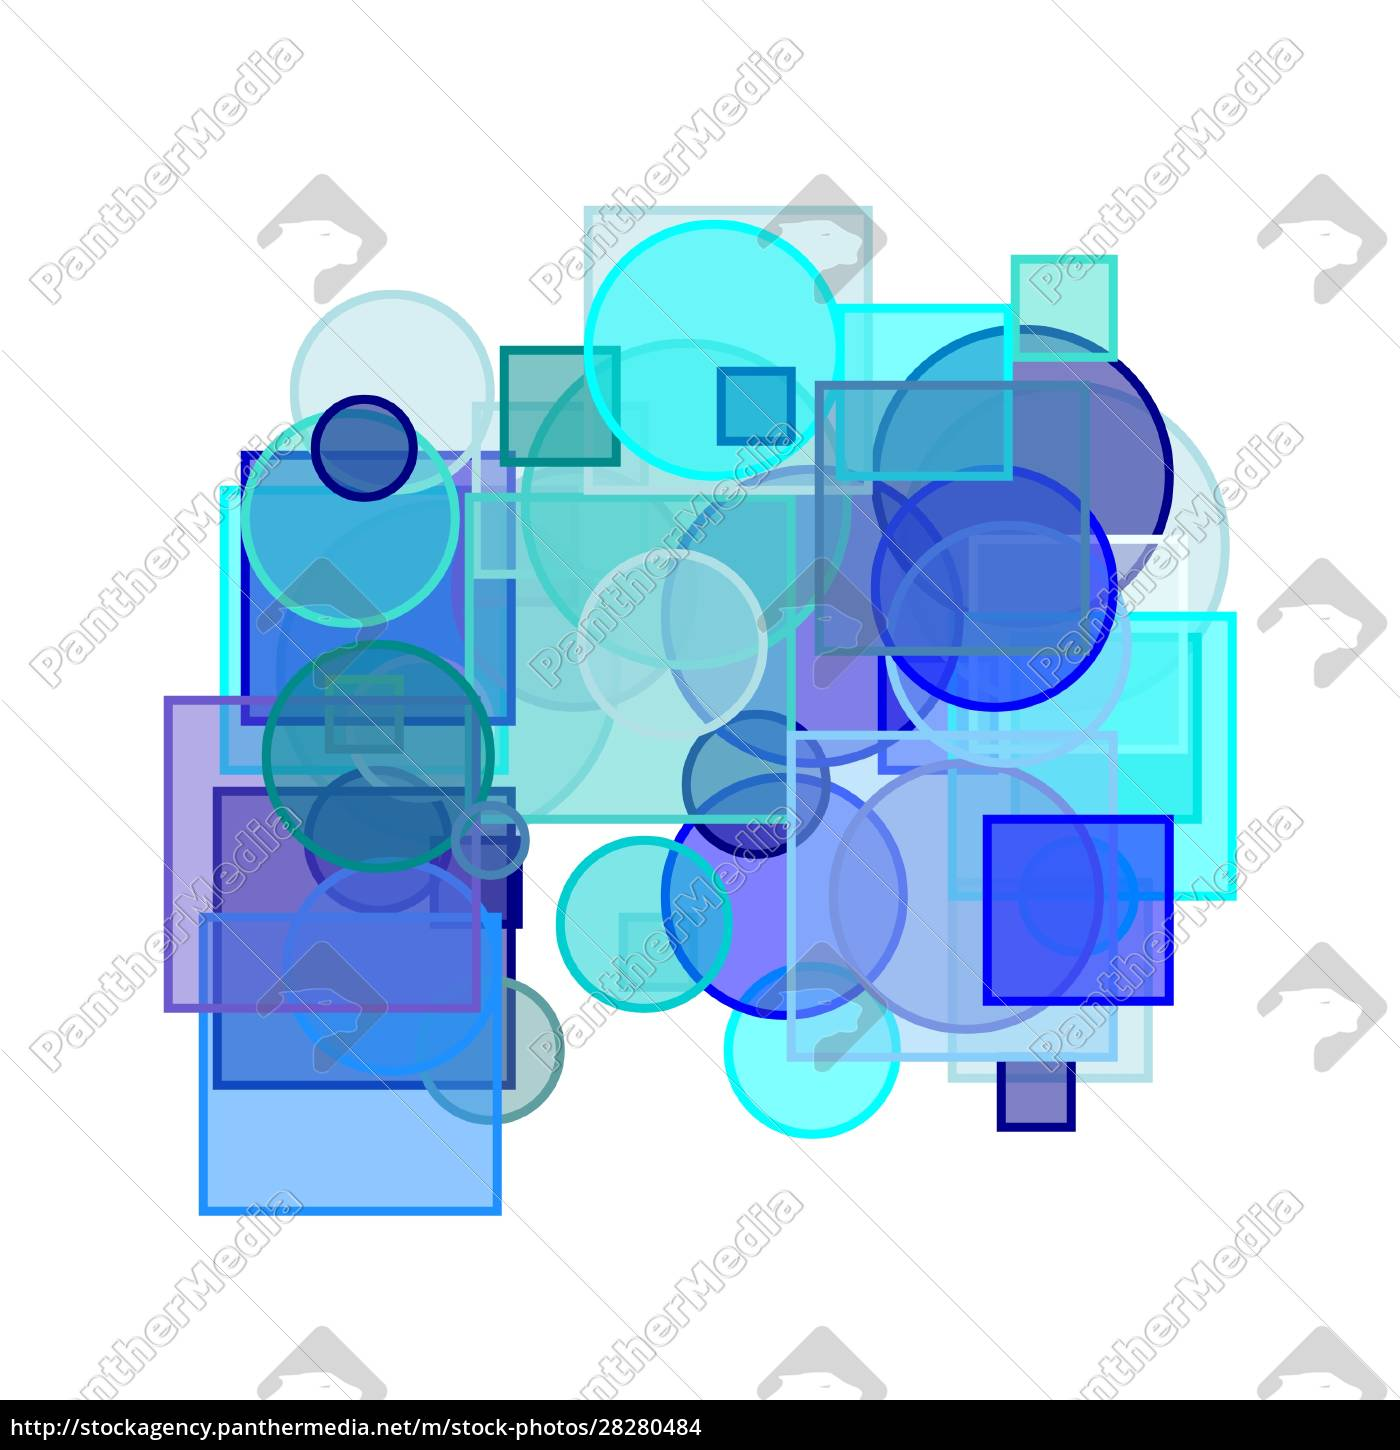 abstract, blue, circles, squares, illustration, background - 28280484